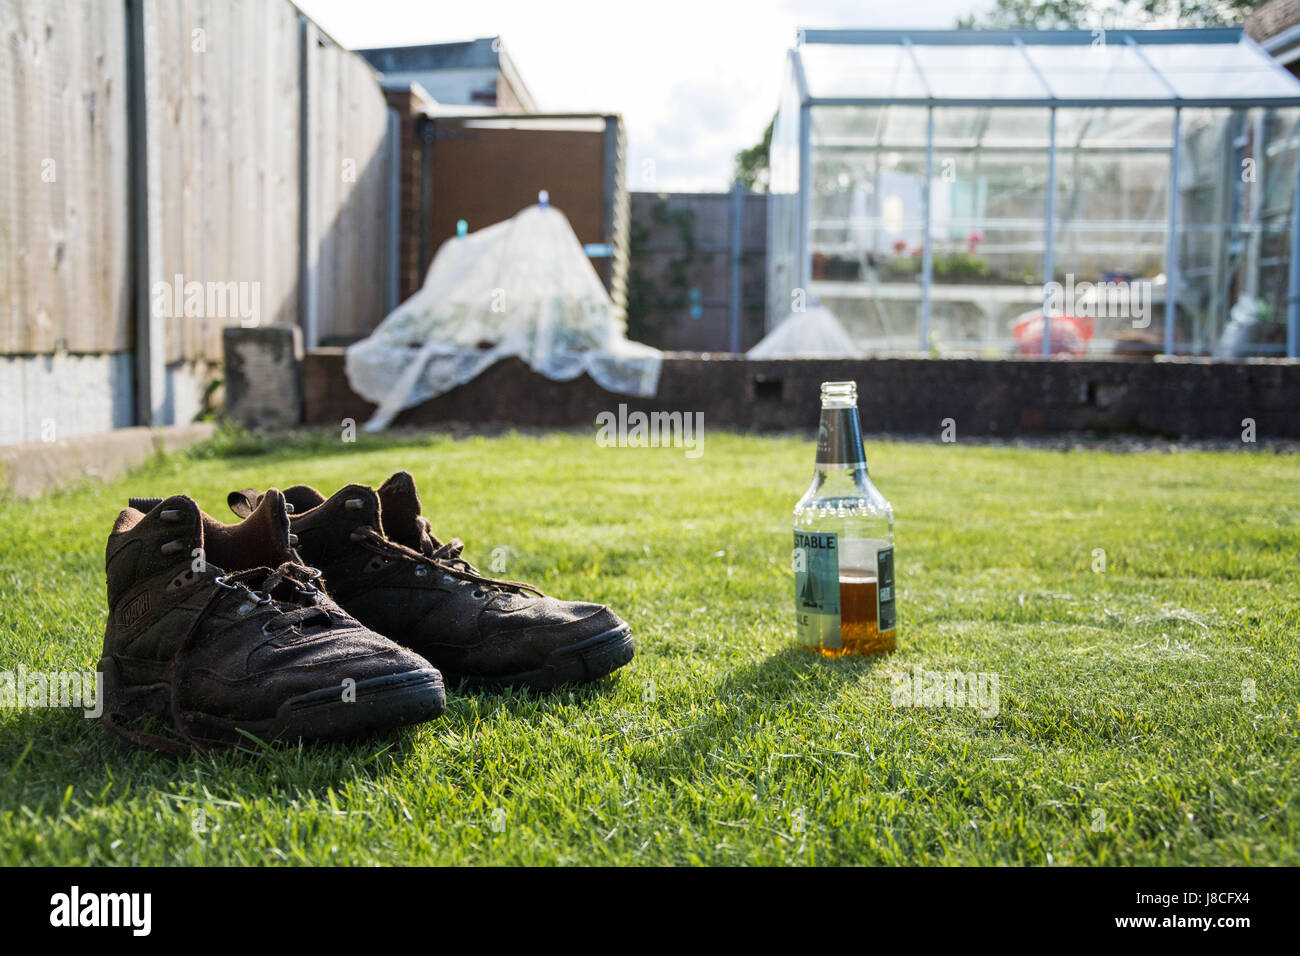 A pair of water soaked brown boots next to an open bottle of beer on a hot sunny day. After a hard day's work - Stock Image